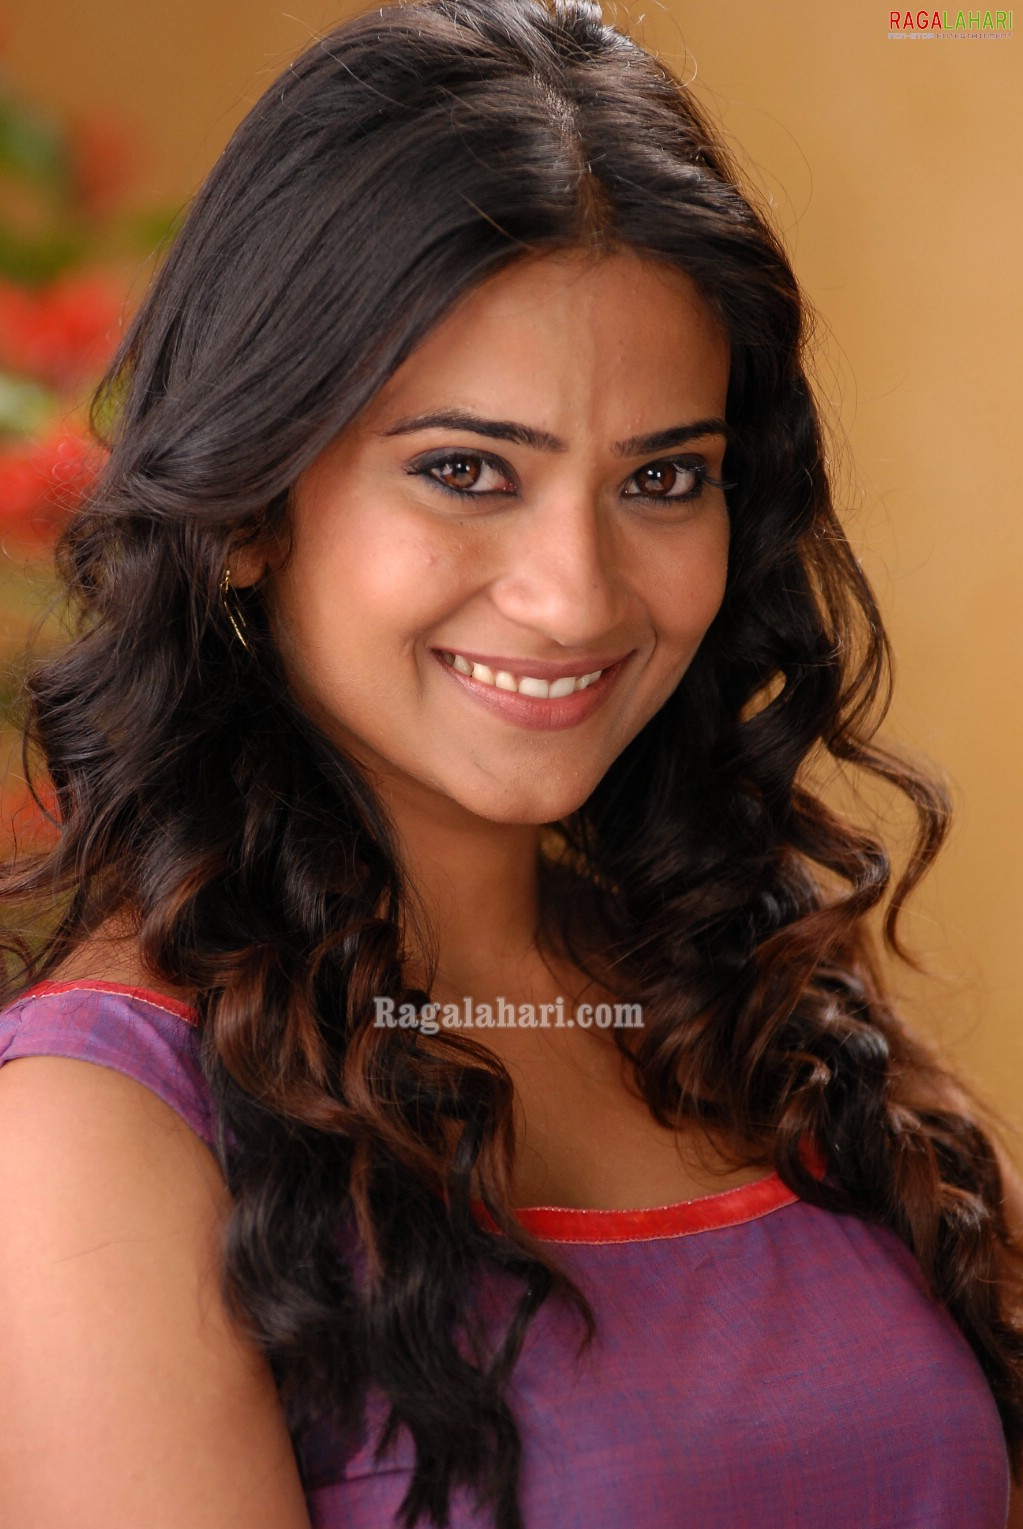 aditi sharma image 6 | tollywood actress photos,telugu movie actress